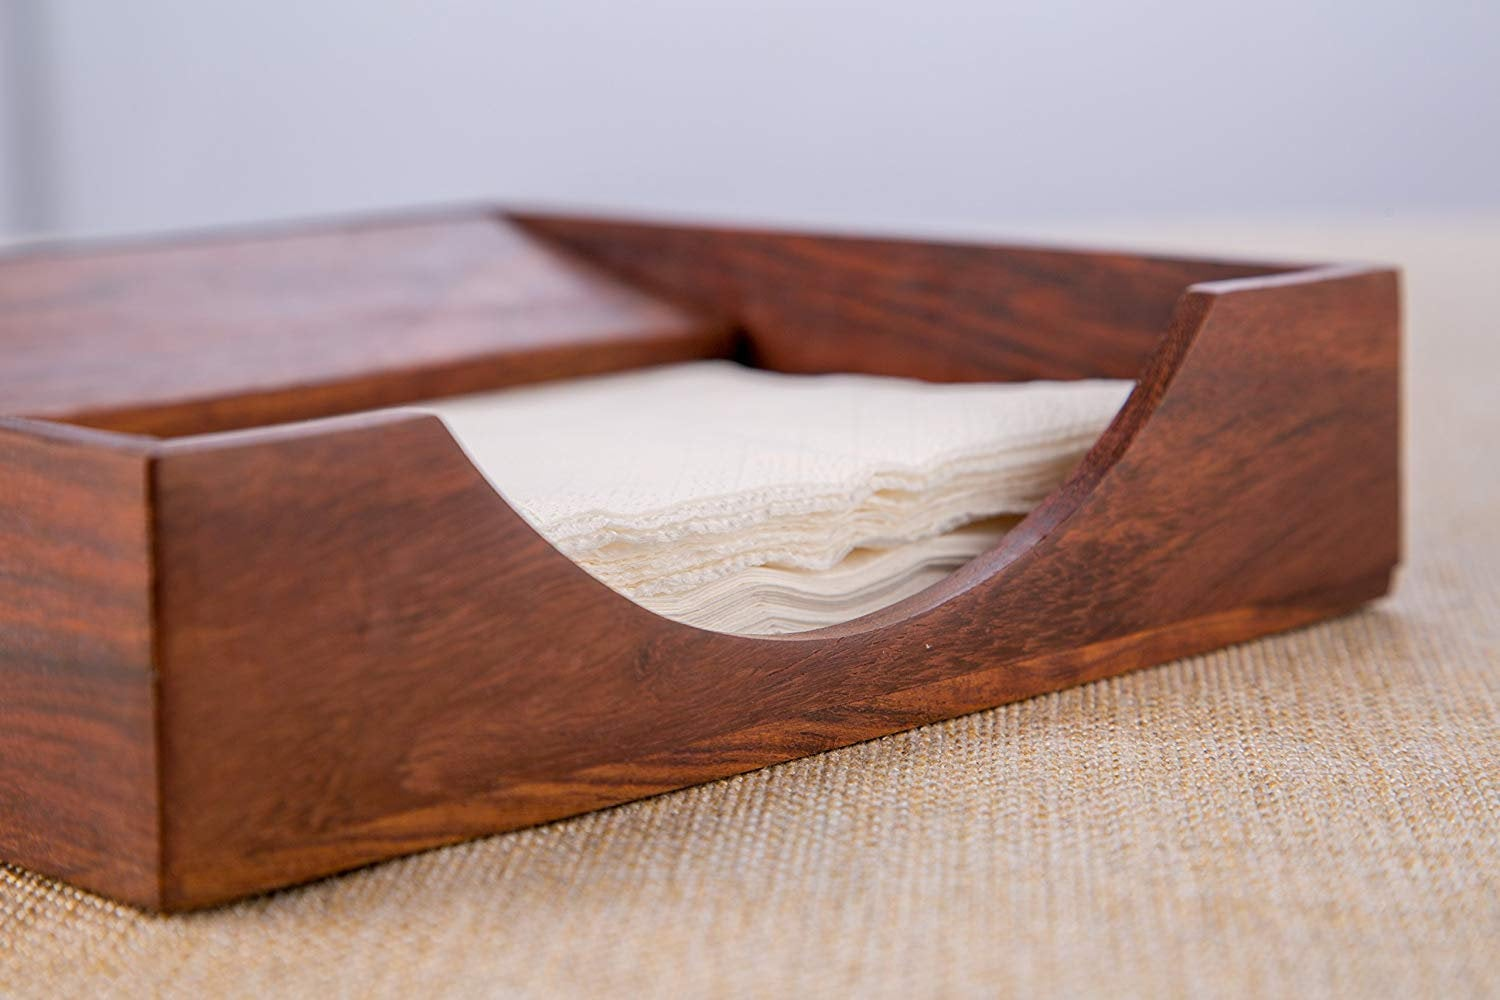 Rusticity Wood Paper Napkin Holder For Napkin And Tissues Sleek Desi Rusticity